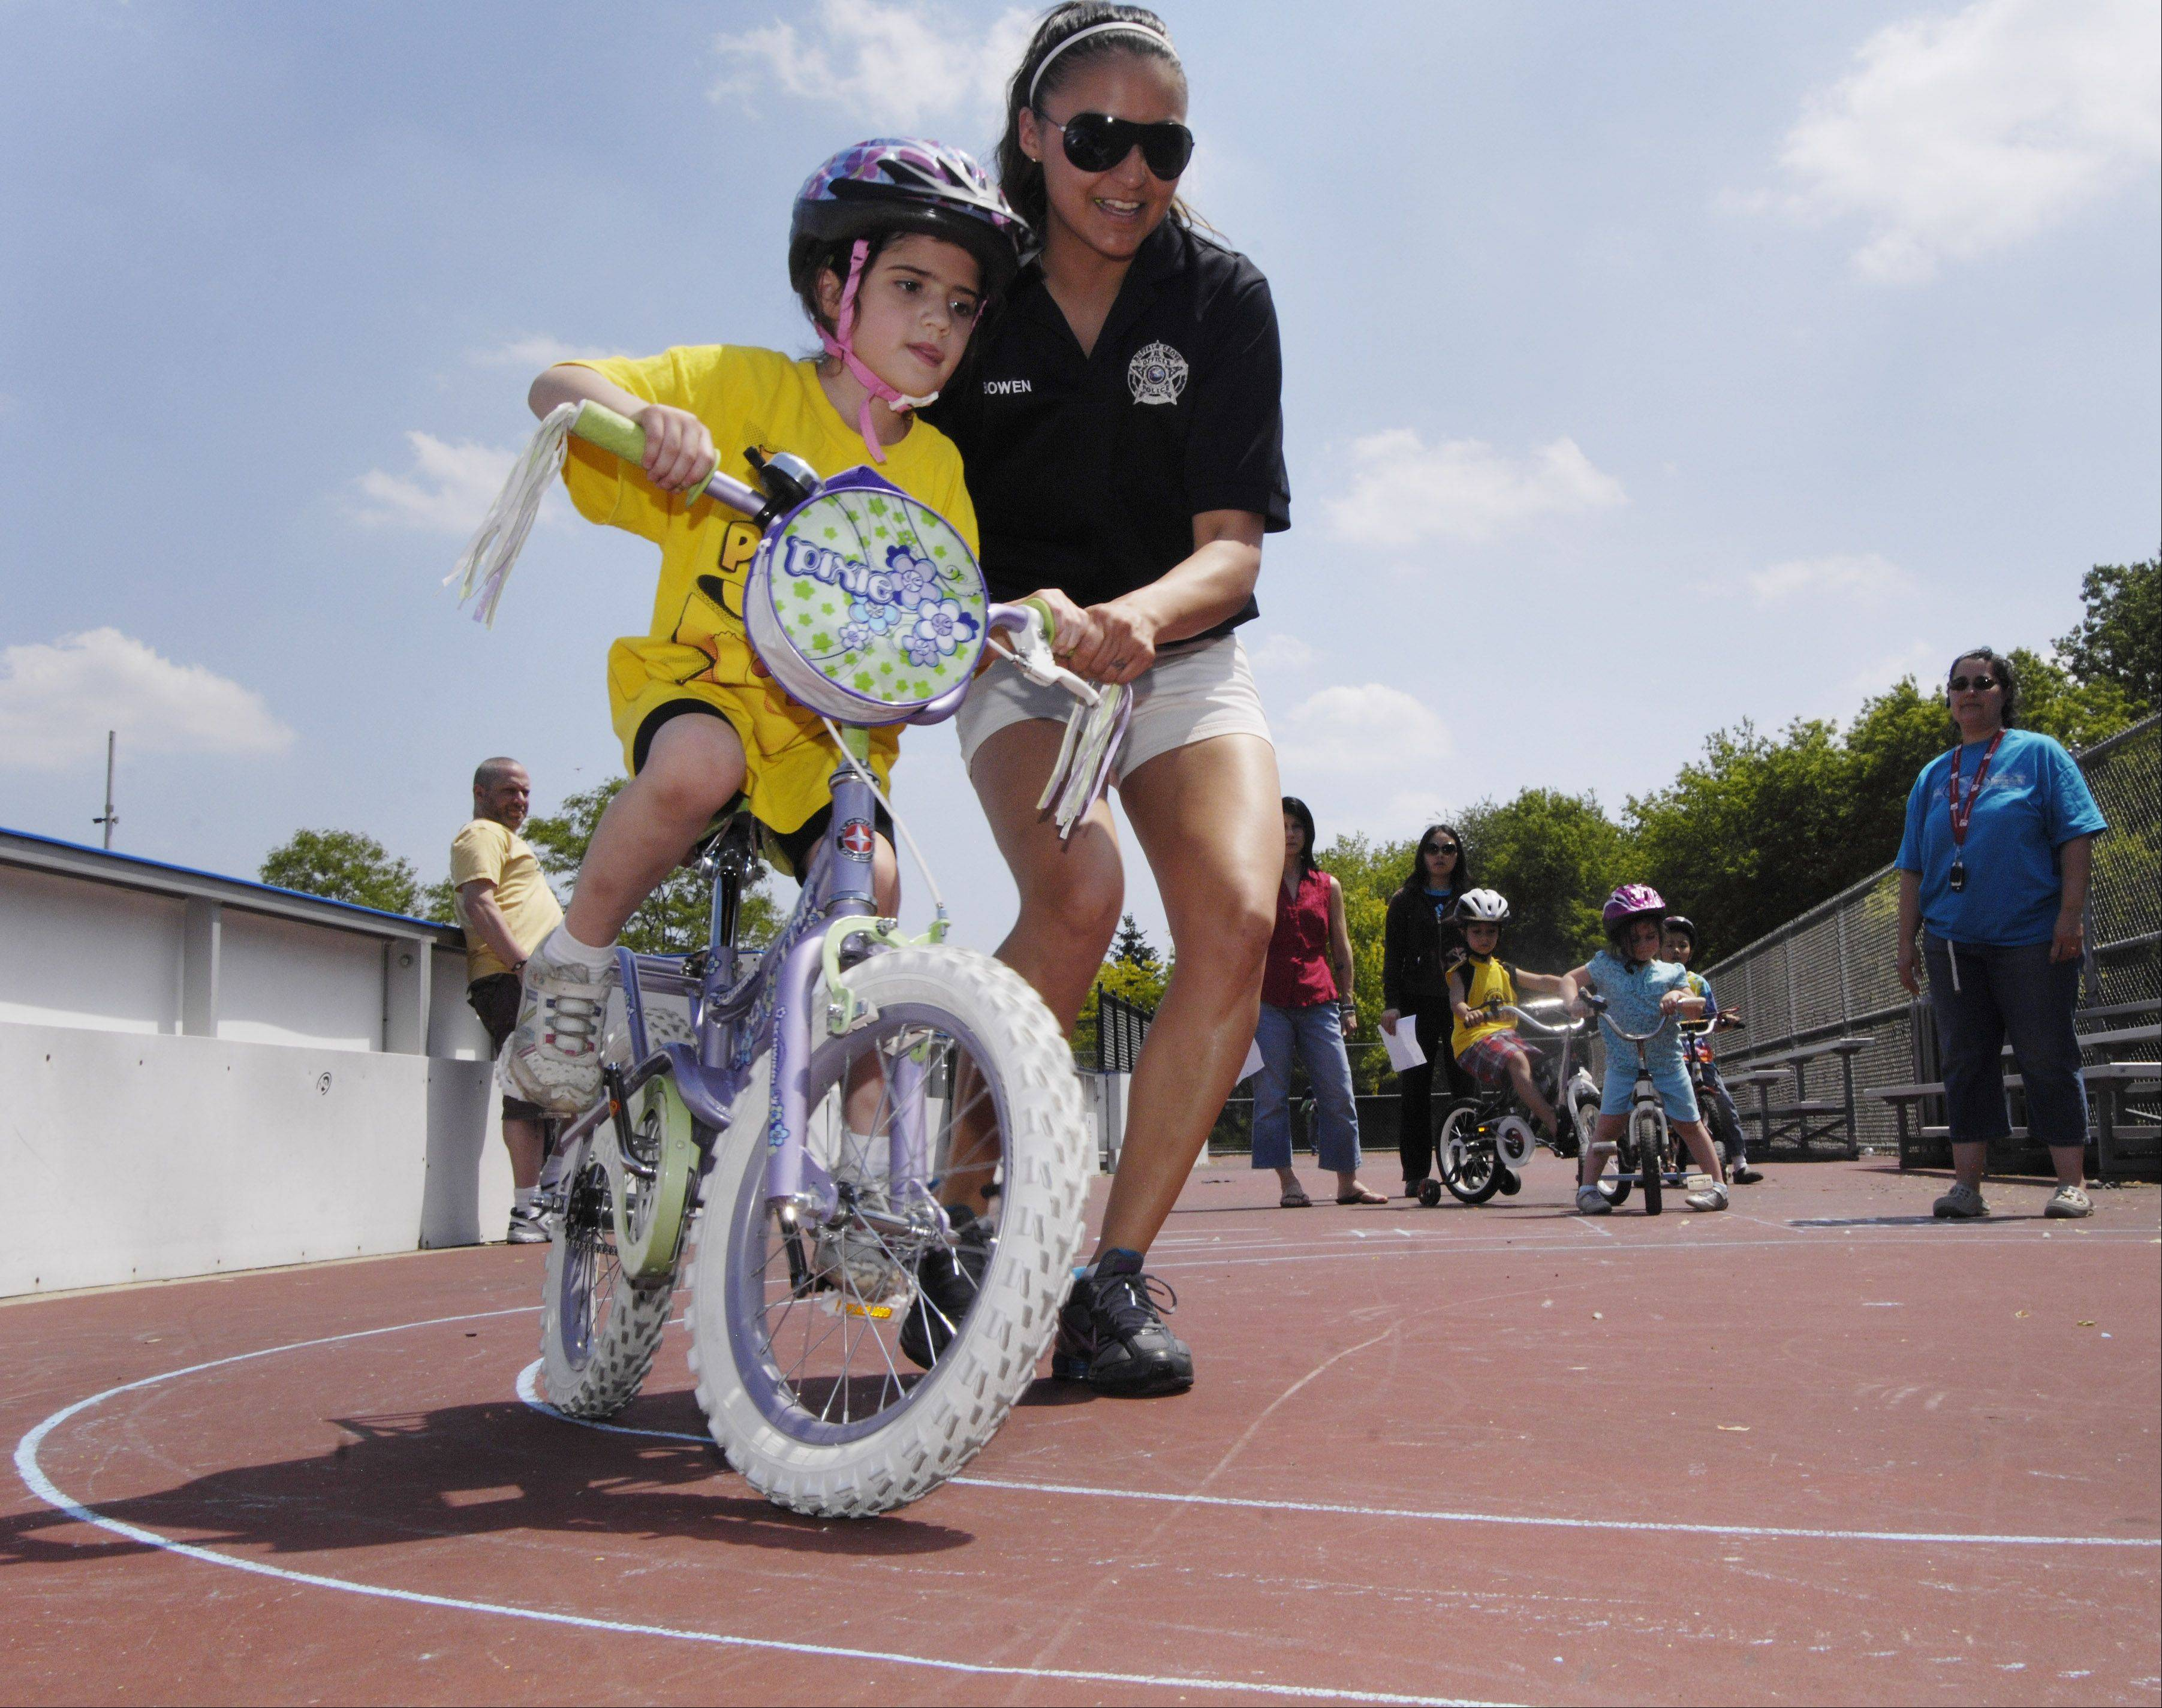 Miranda Logan, 6, of Buffalo Grove gets a little help from police officer Crystal Bowen as she completes a figure eight during Saturday's Buffalo Grove bicycle rodeo at Mike Rylko Park.